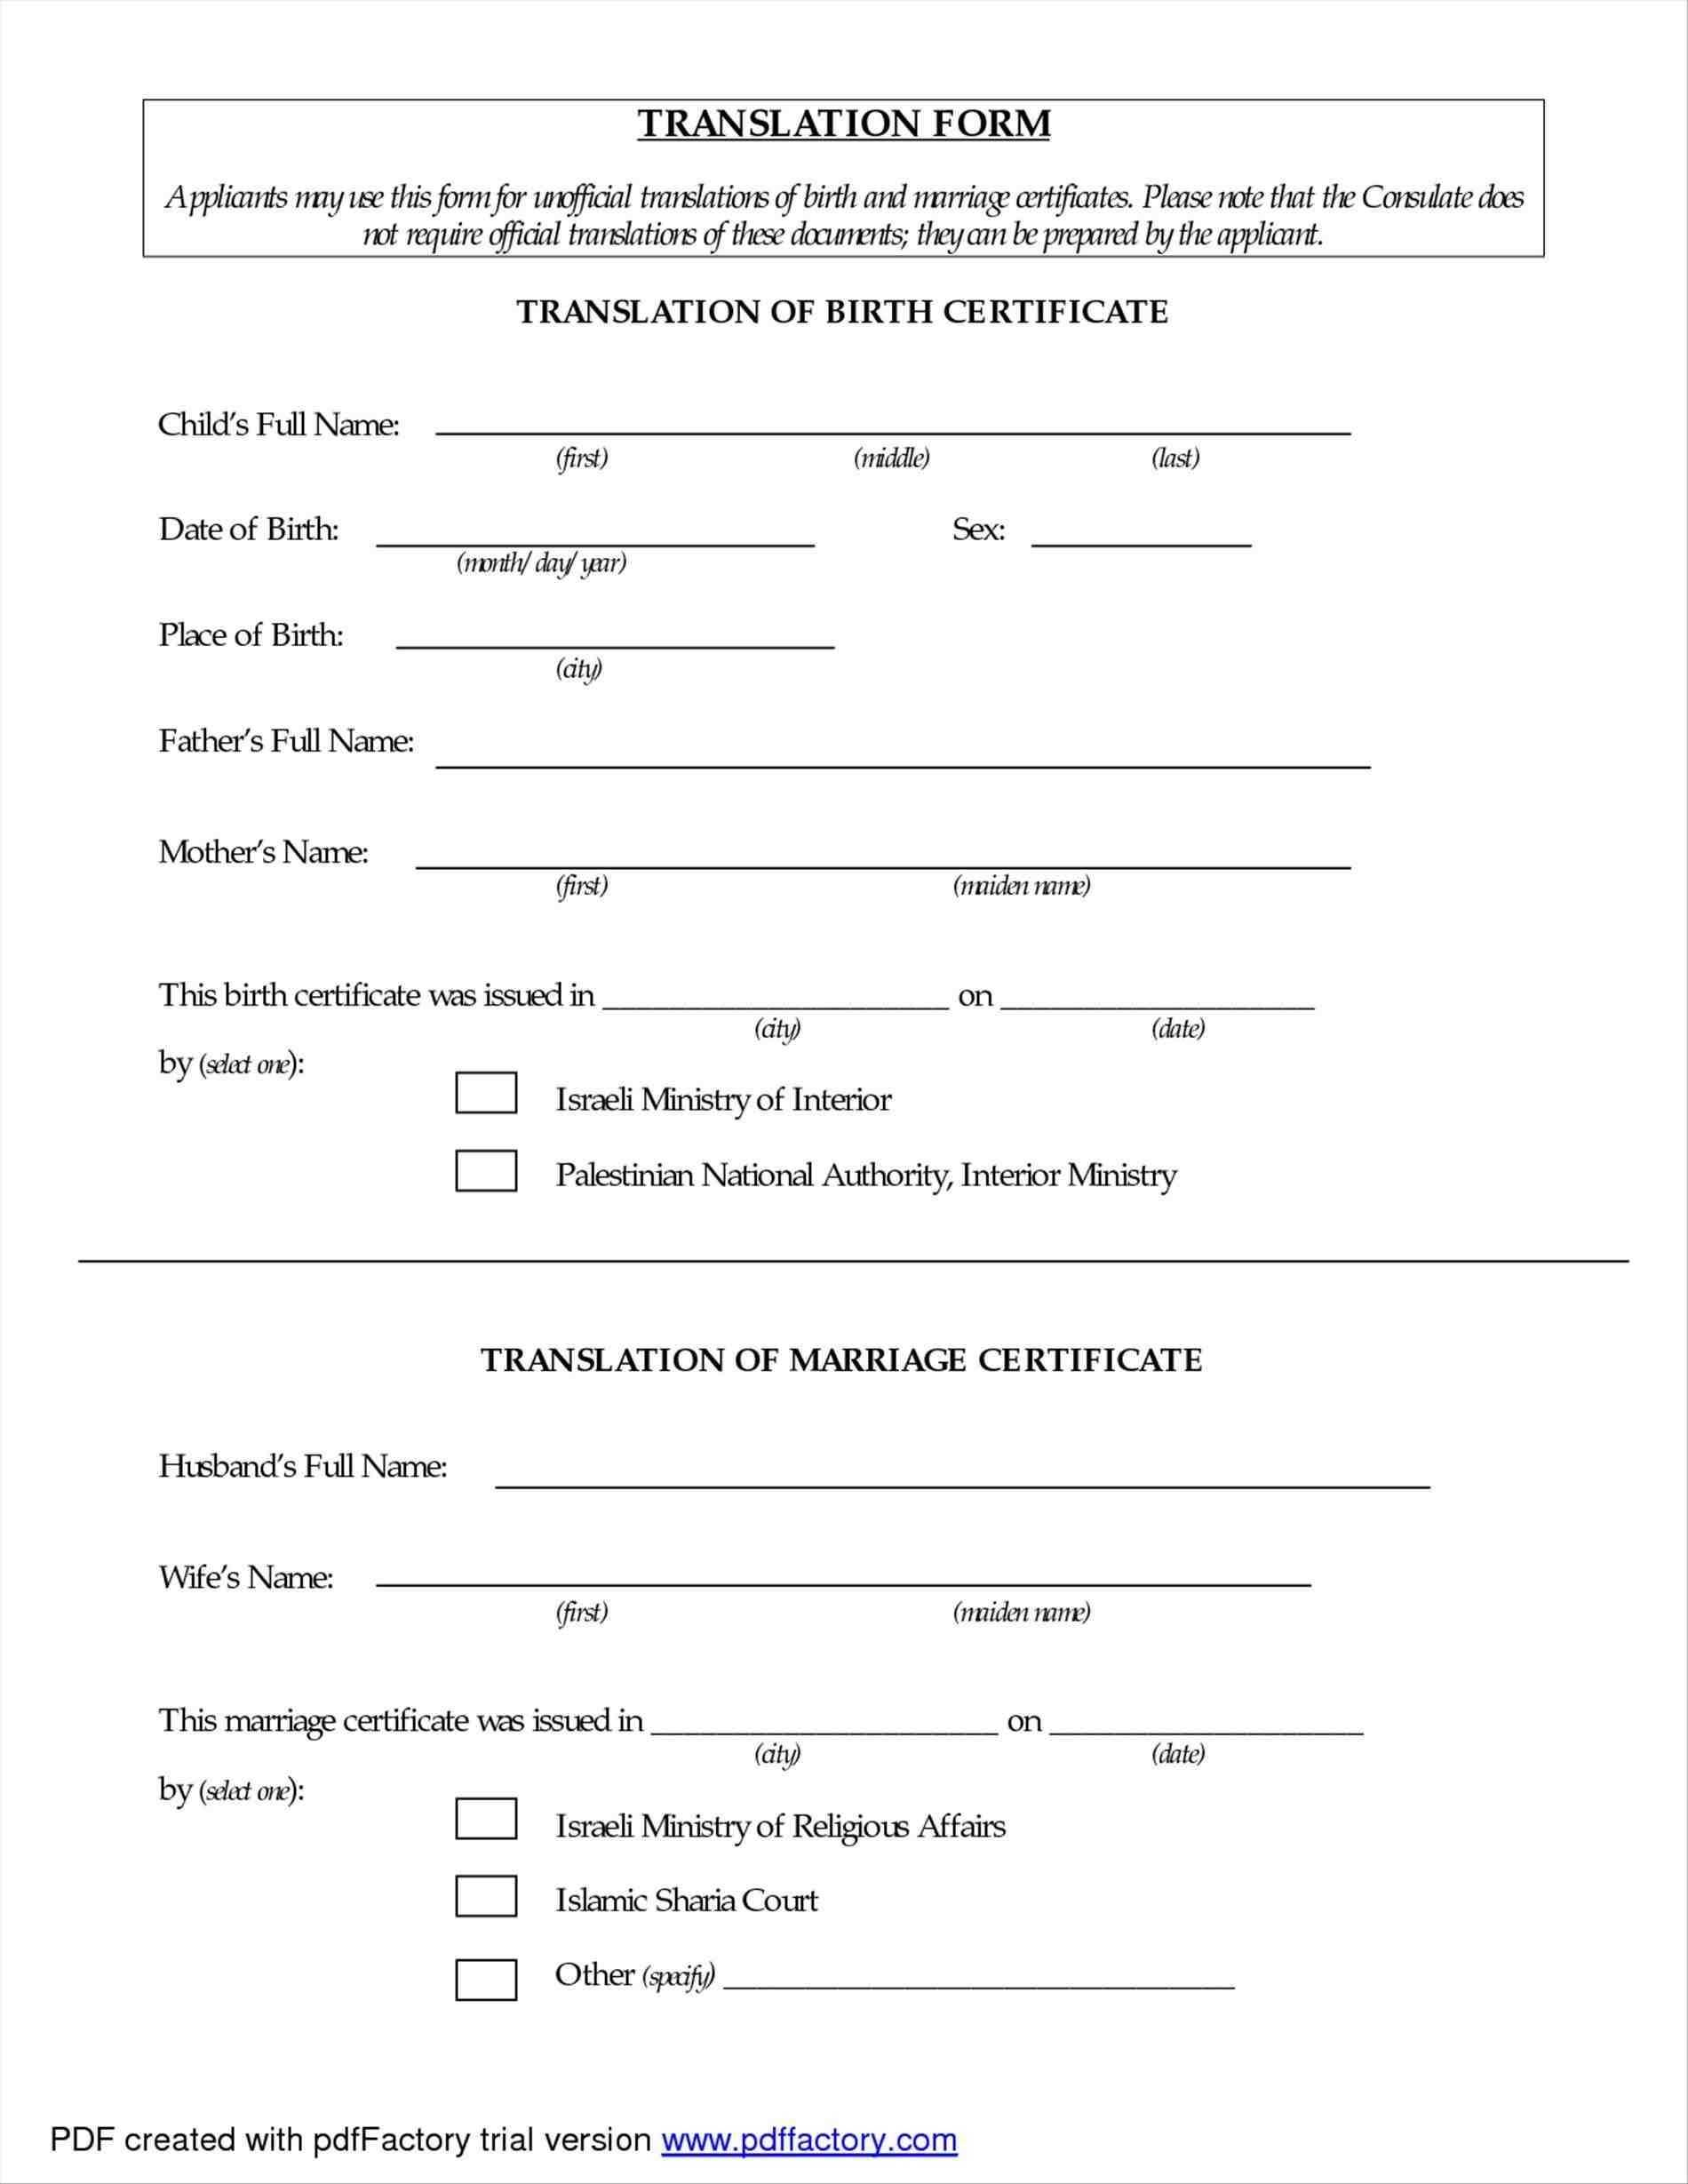 009 Marriage Certificate Template Ideas Beautiful Of Within Marriage Certificate Translation From Spanish To English Template